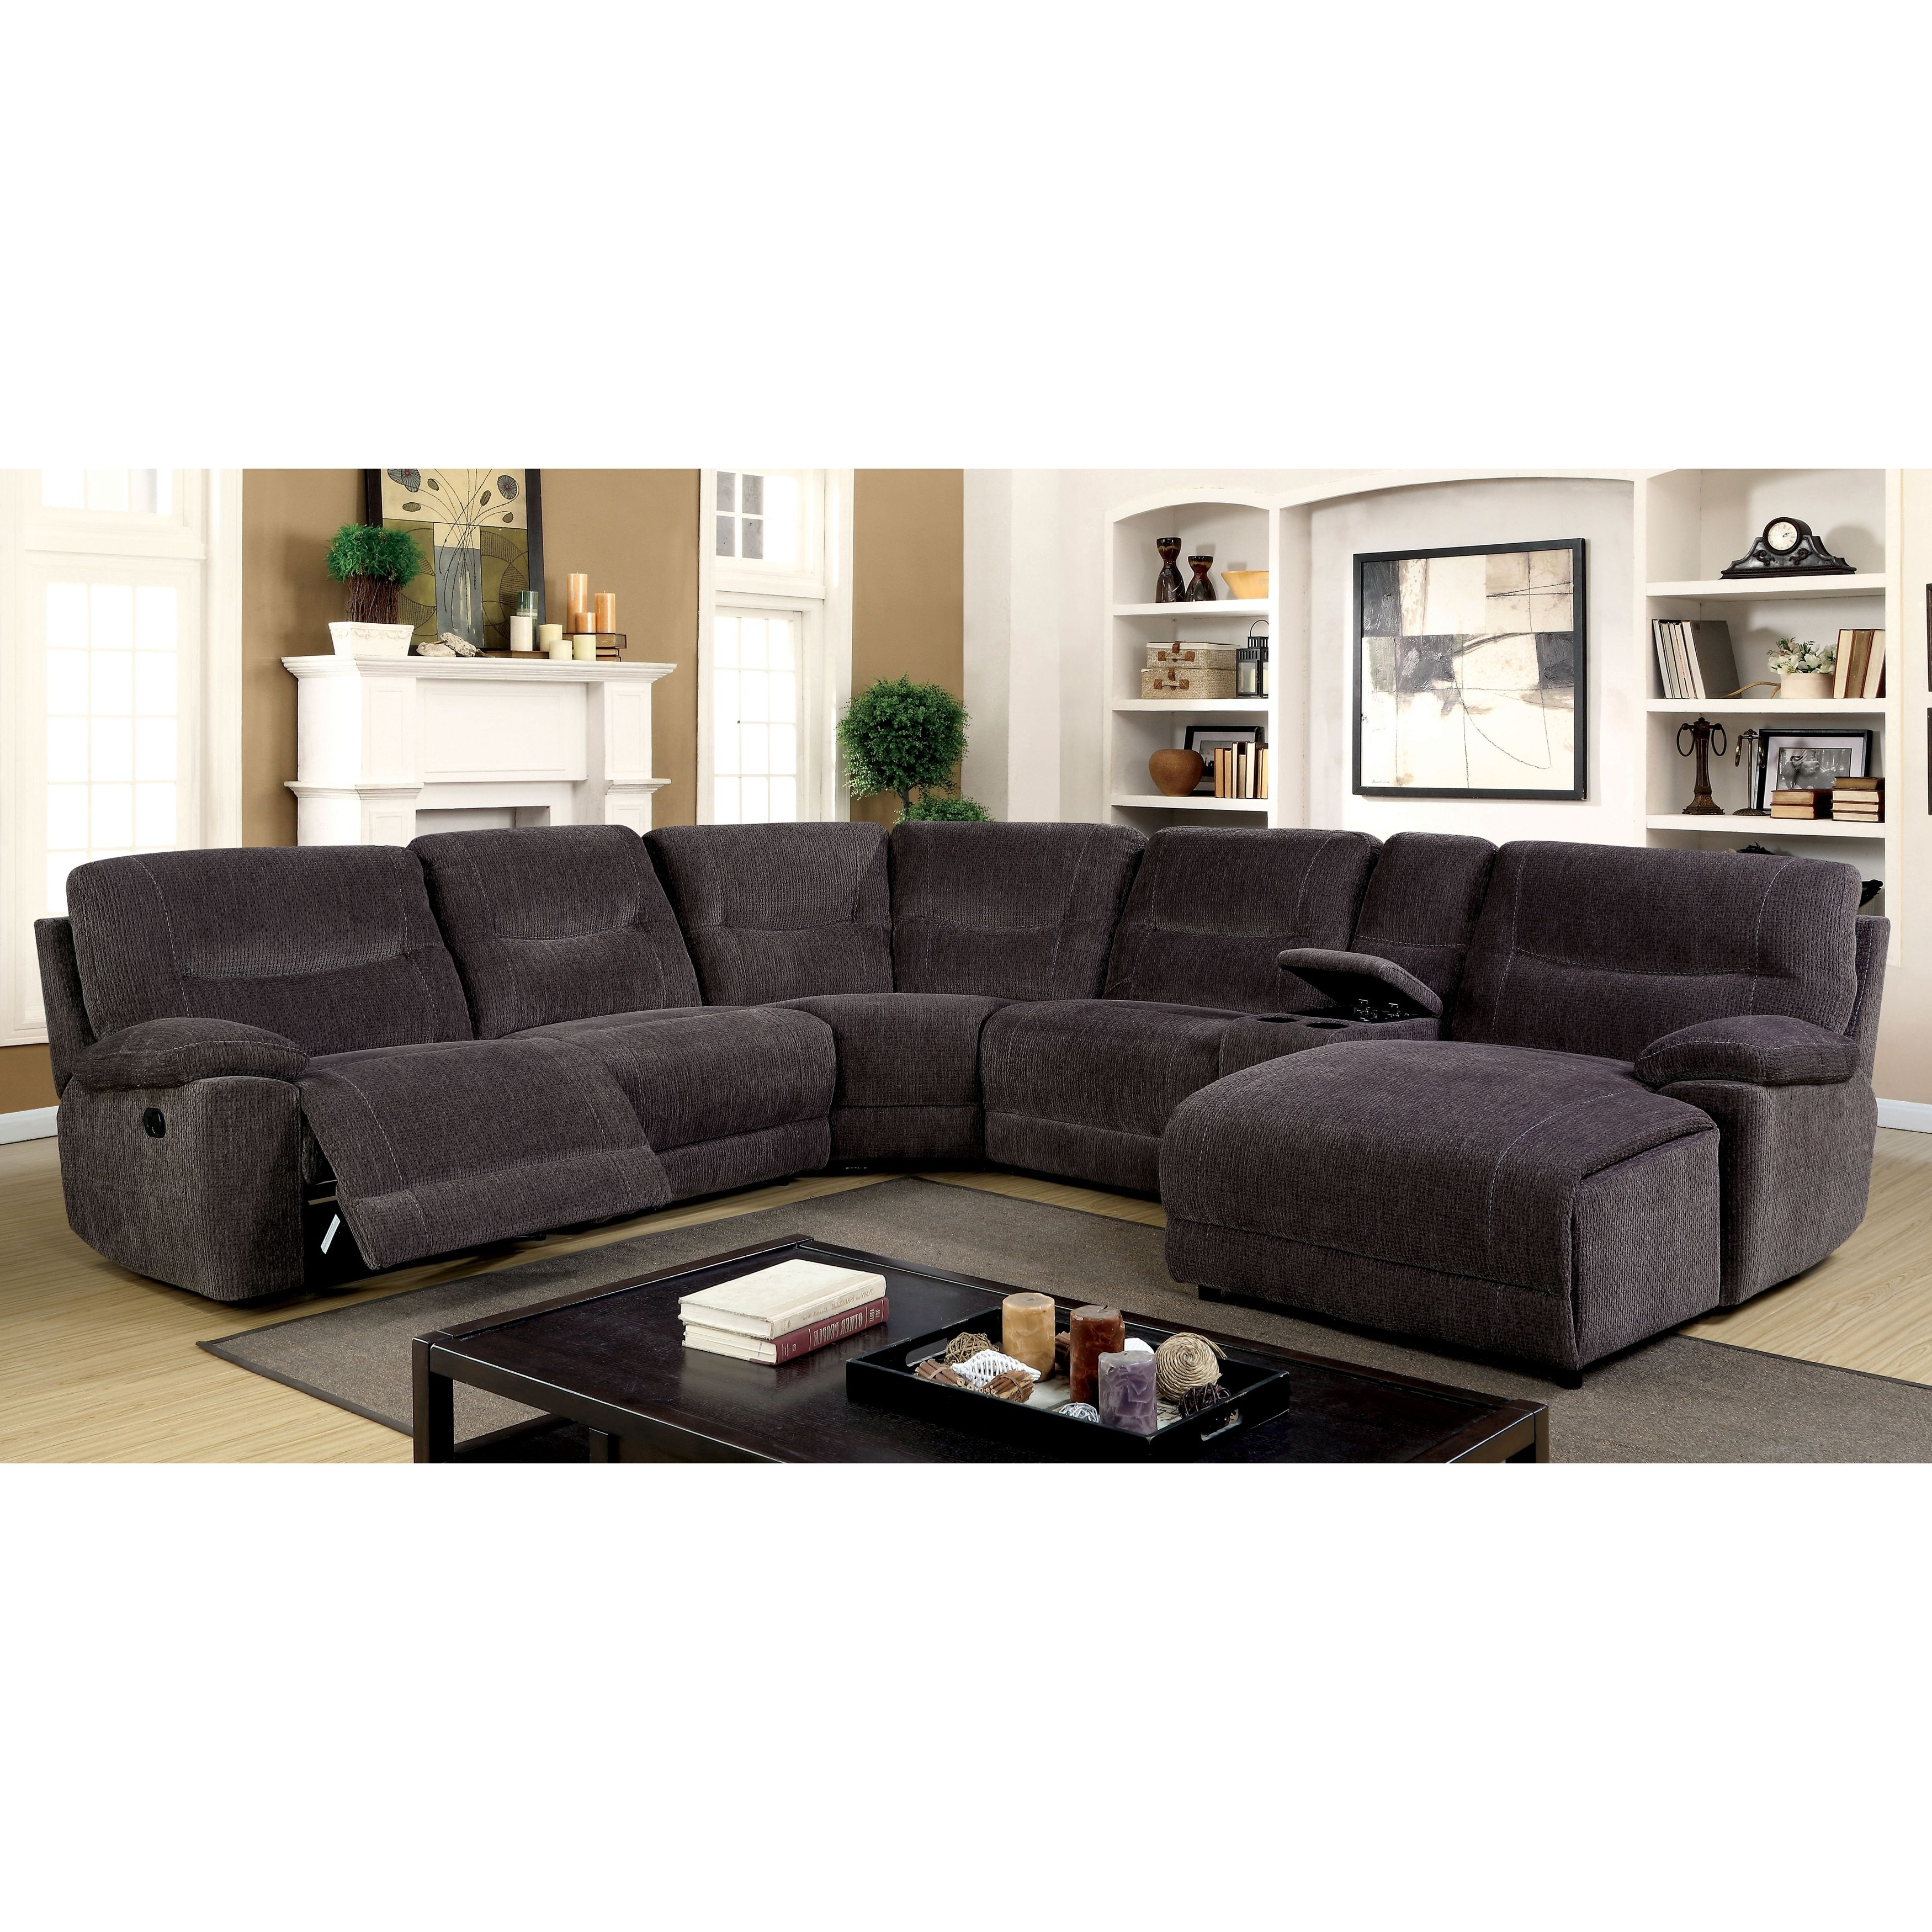 Furniture Of America Colen Reclining Chenille Fabric Grey L Shaped With Regard To Most Recently Released Johnson City Tn Sectional Sofas (View 10 of 20)